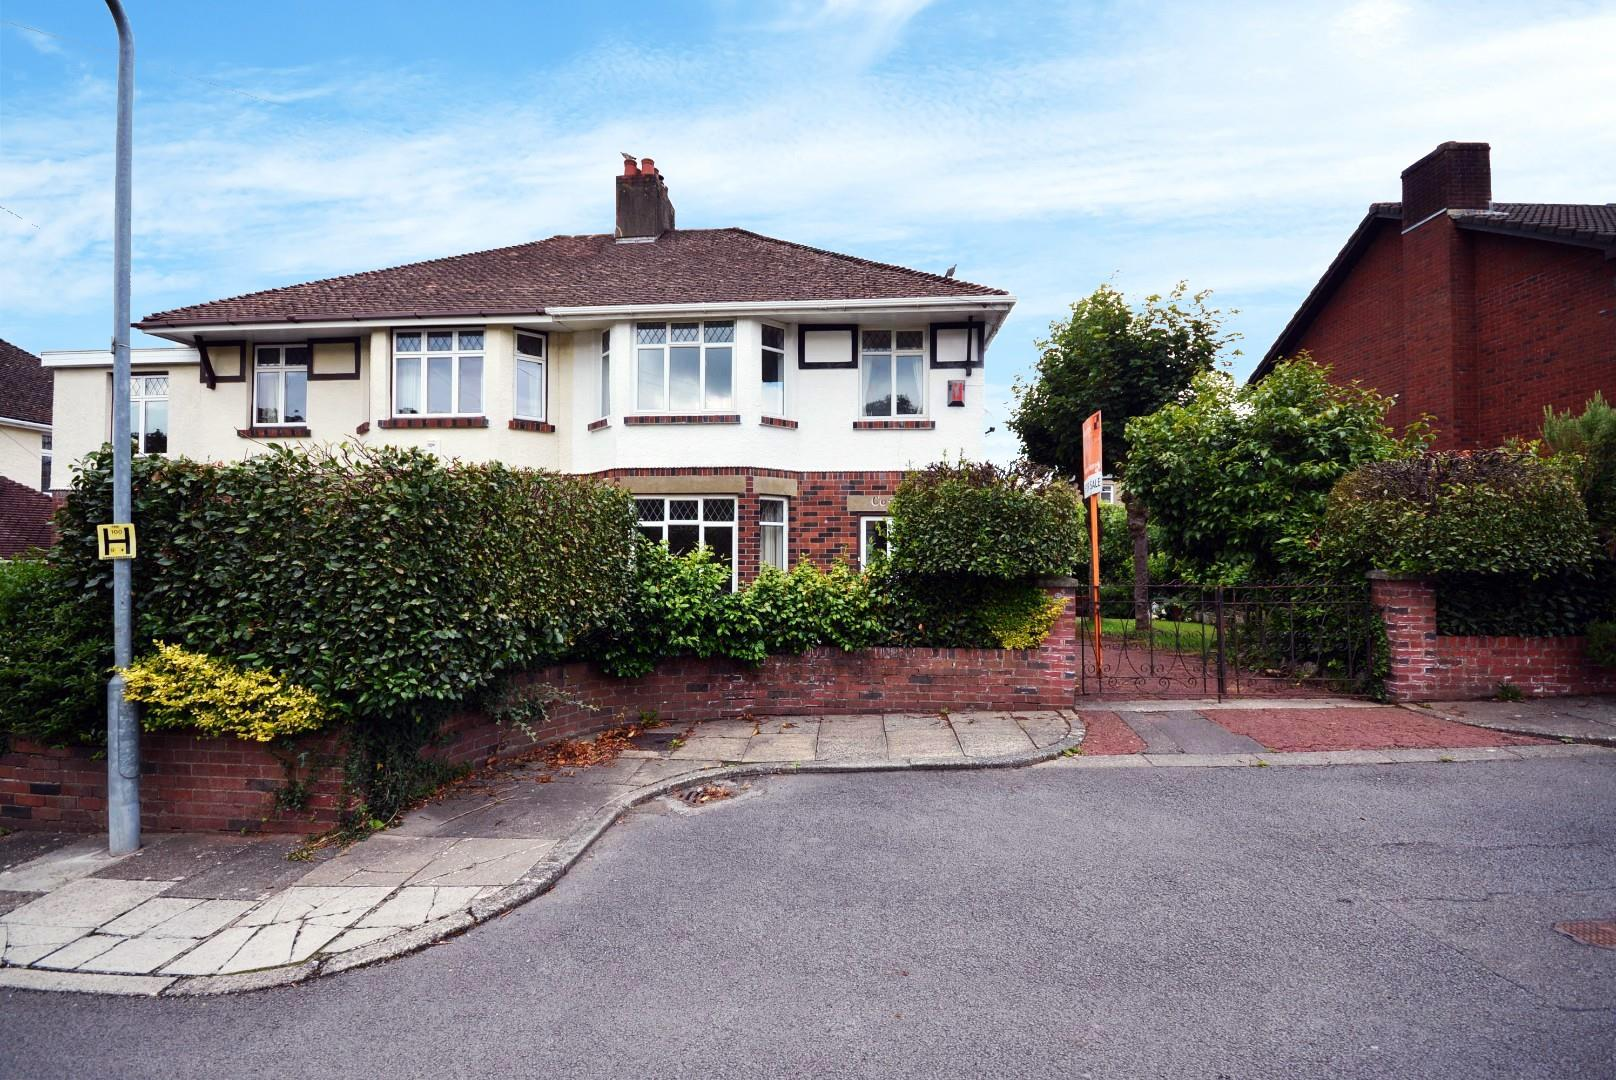 3 bed semi-detached house for sale in Nant-Fawr Crescent, Cardiff, CF23